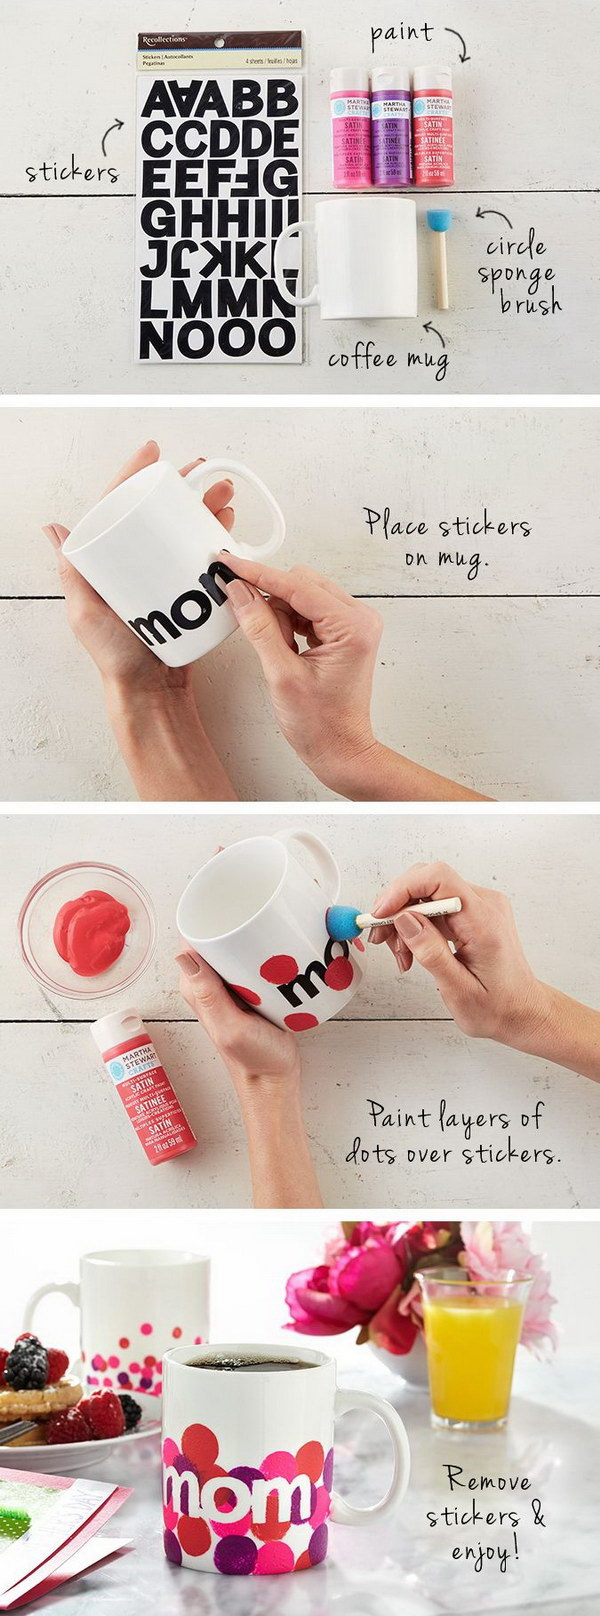 1-heartfelt-diy-gifts-for-mom